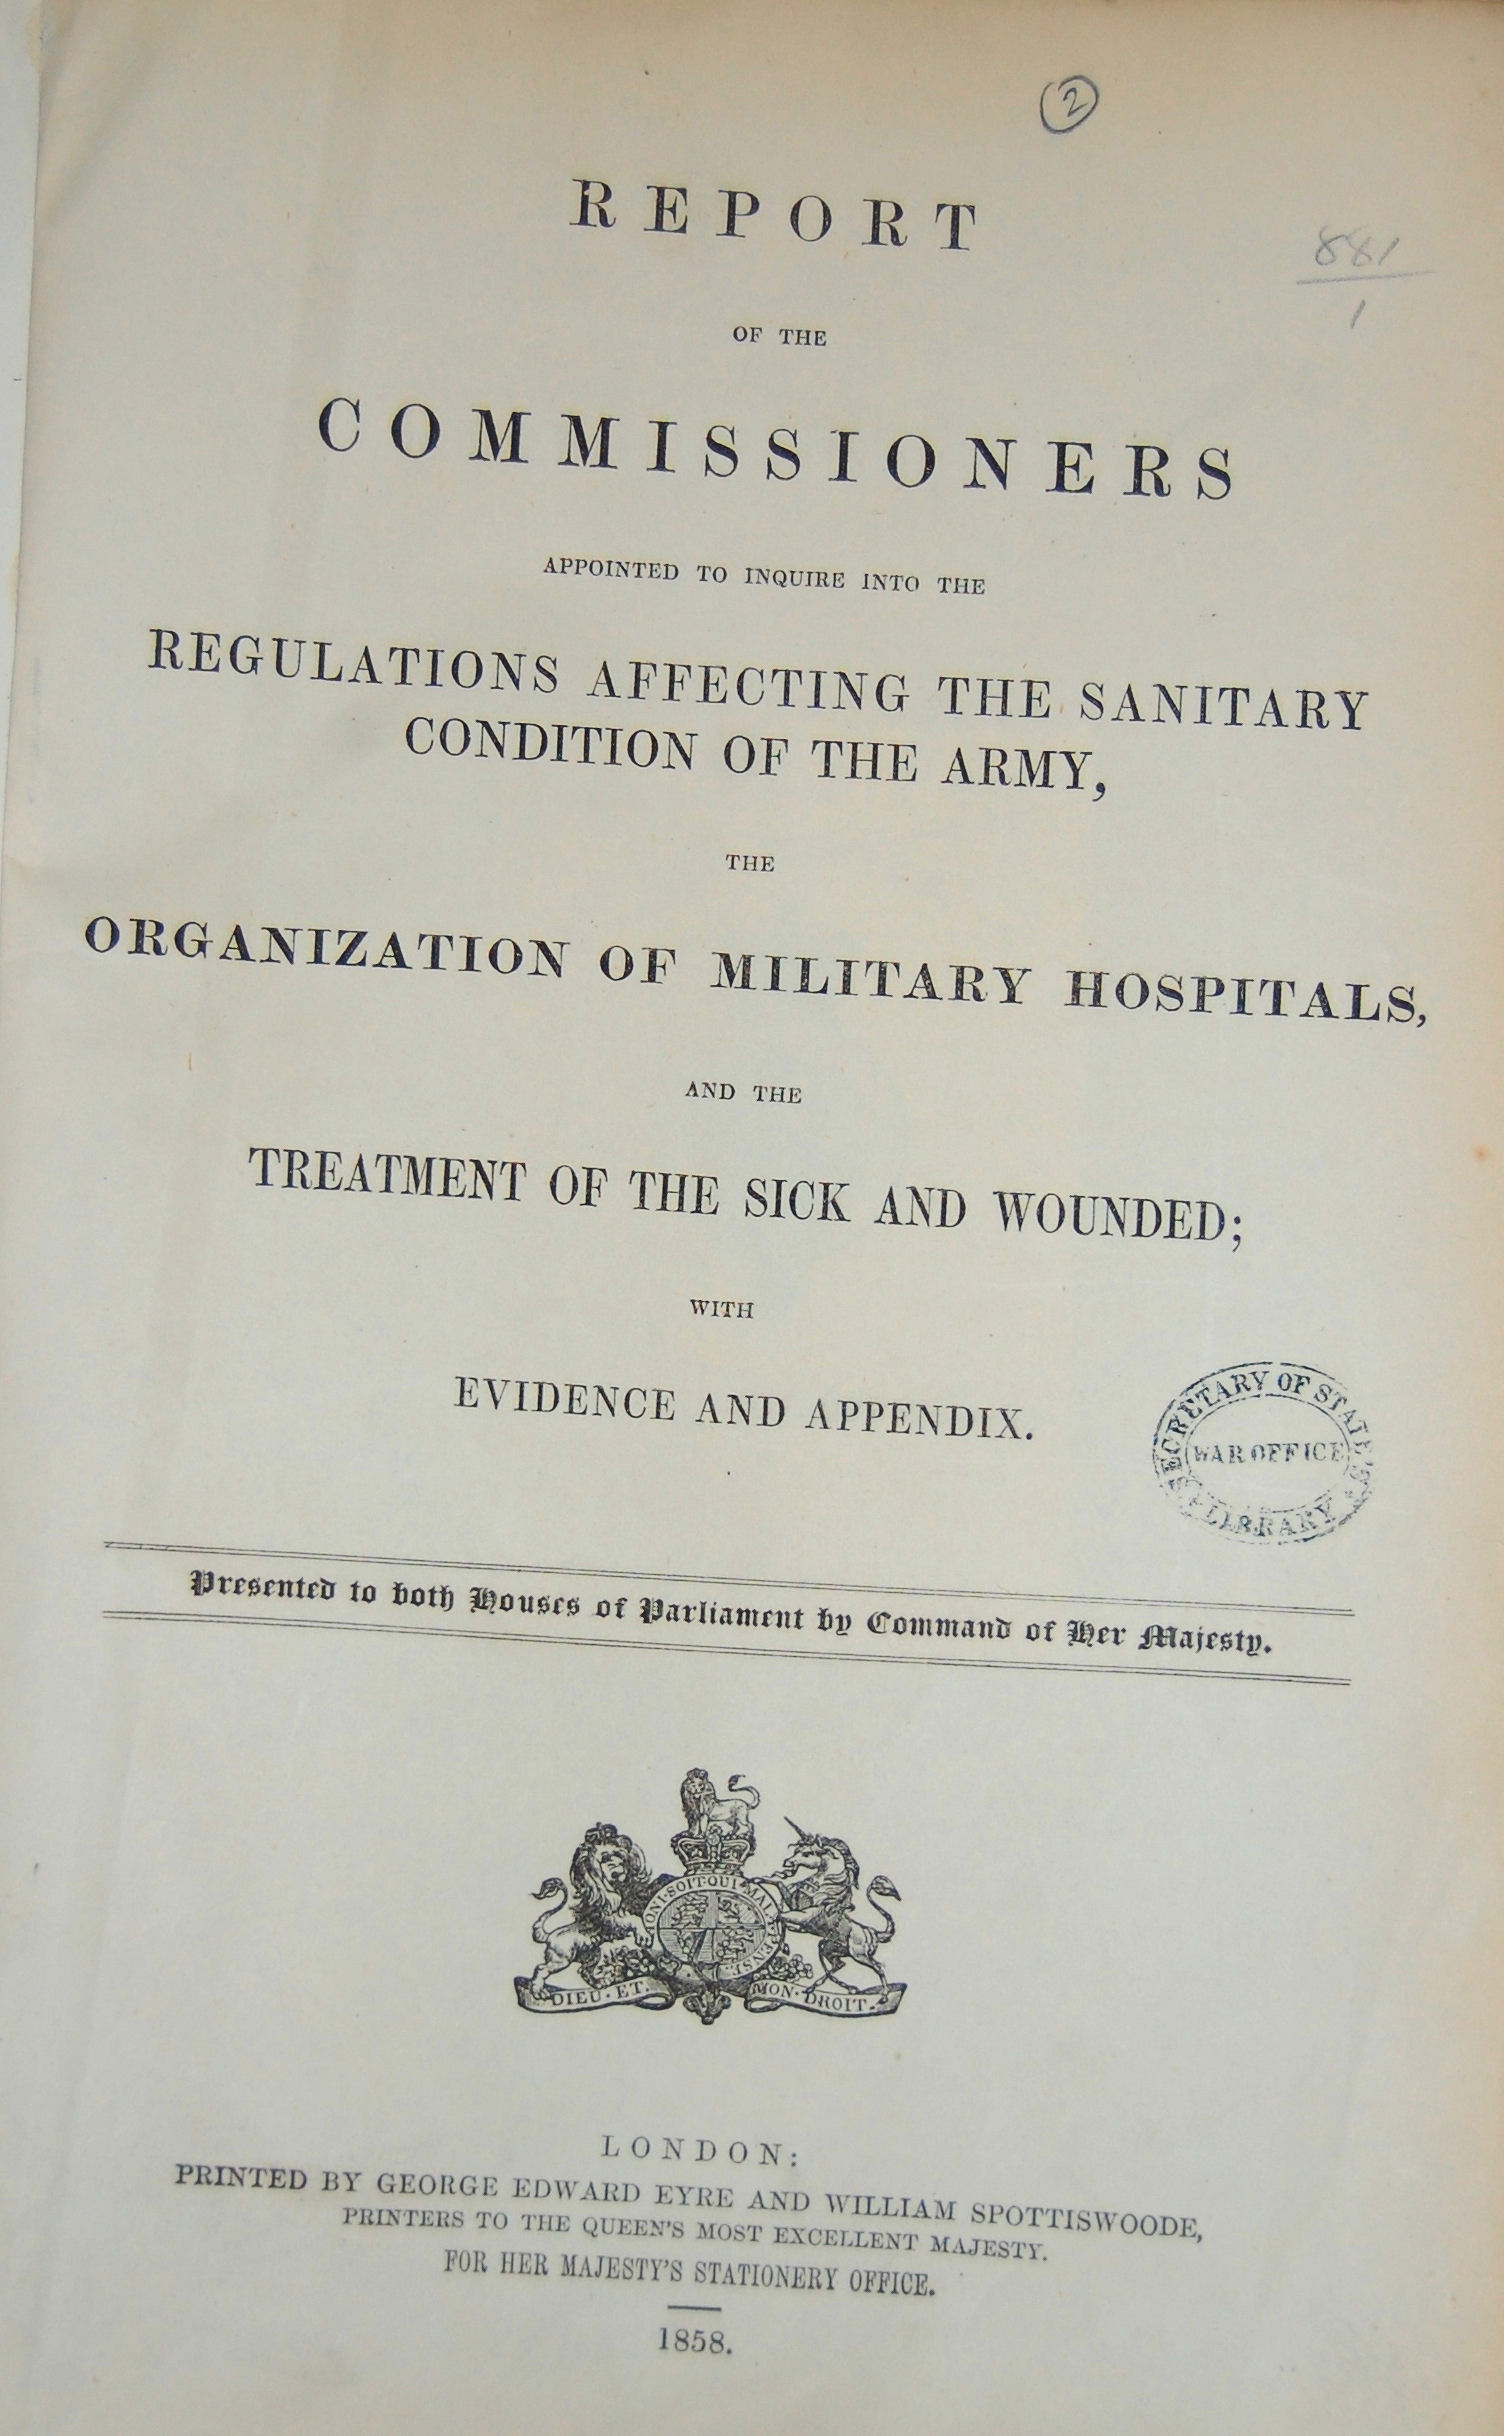 The Army Hospital Corps